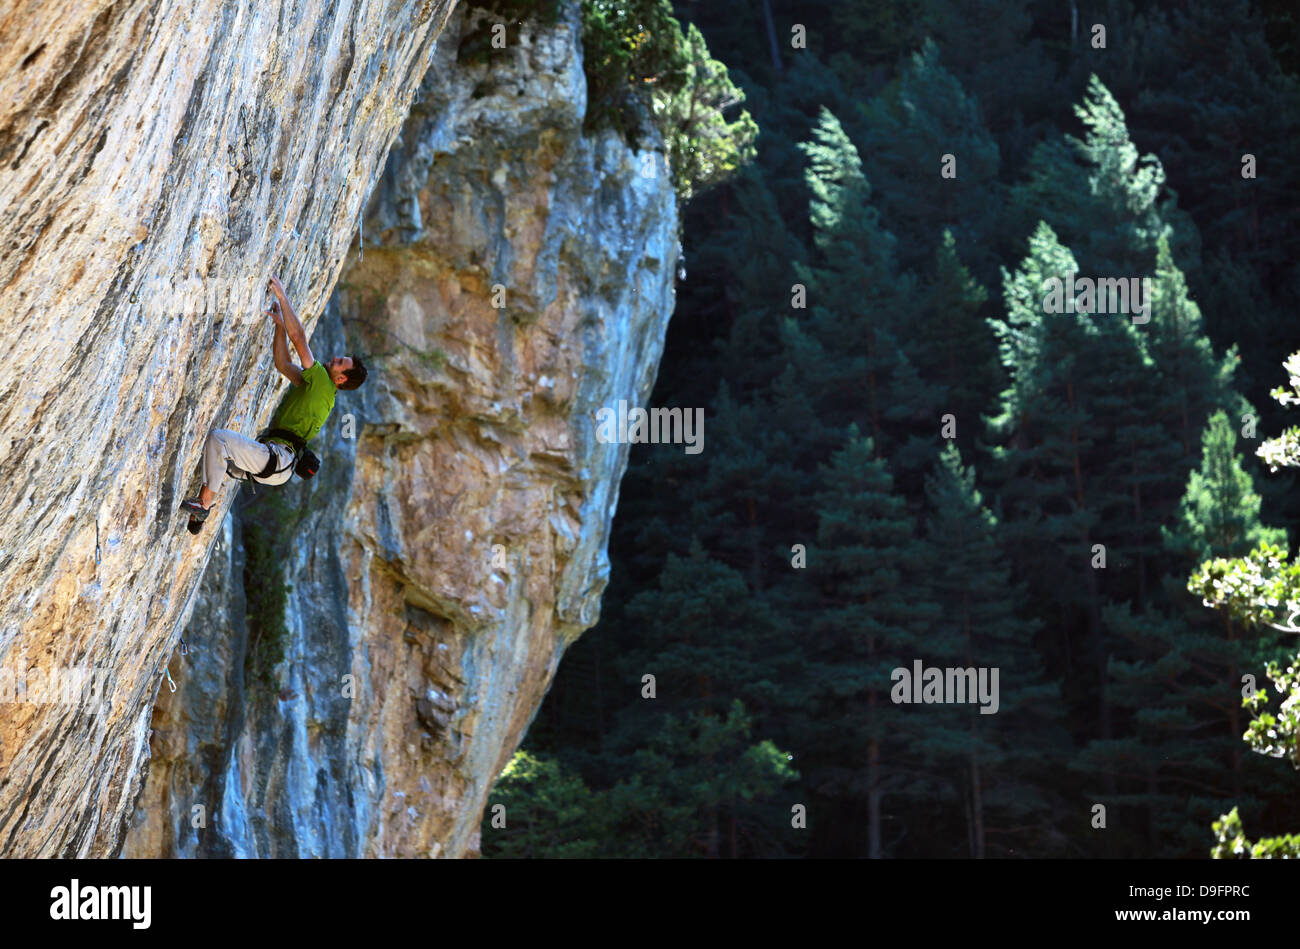 A climber scales cliffs at Bielsa, Spanish Pyrenees, Spain - Stock Image